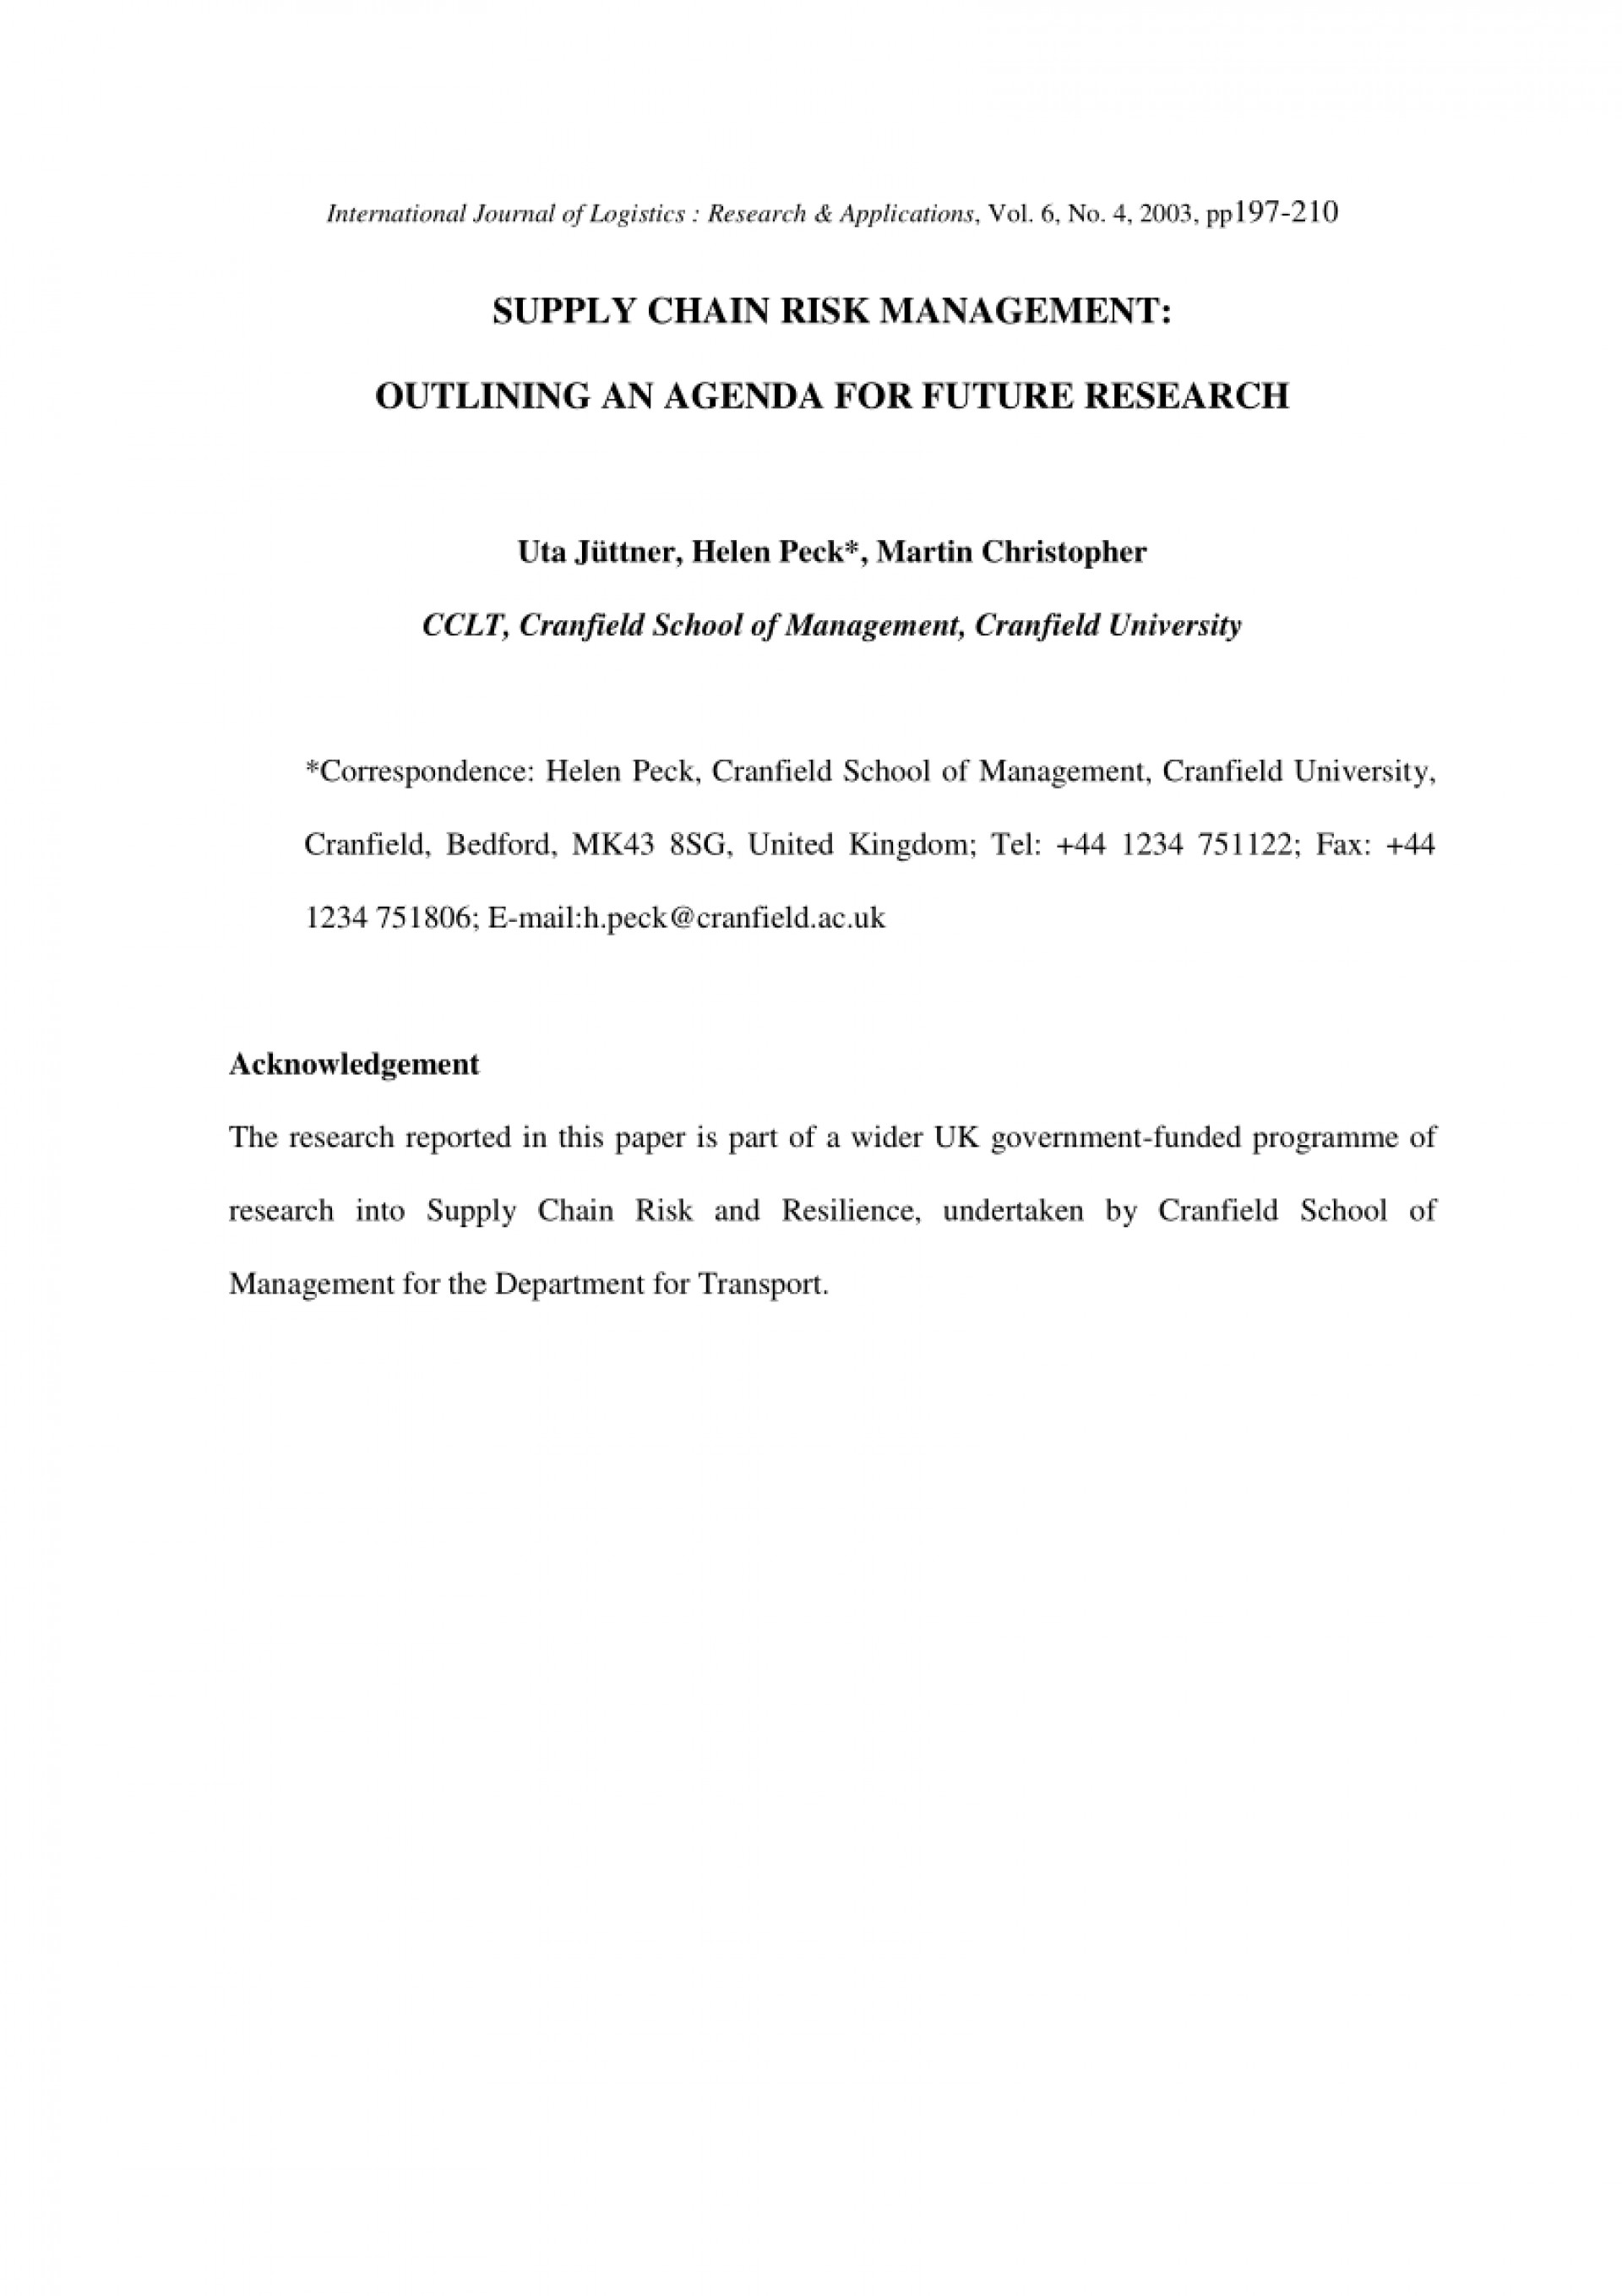 005 Acknowledgement Example For Research Paper Rare Pdf 1920